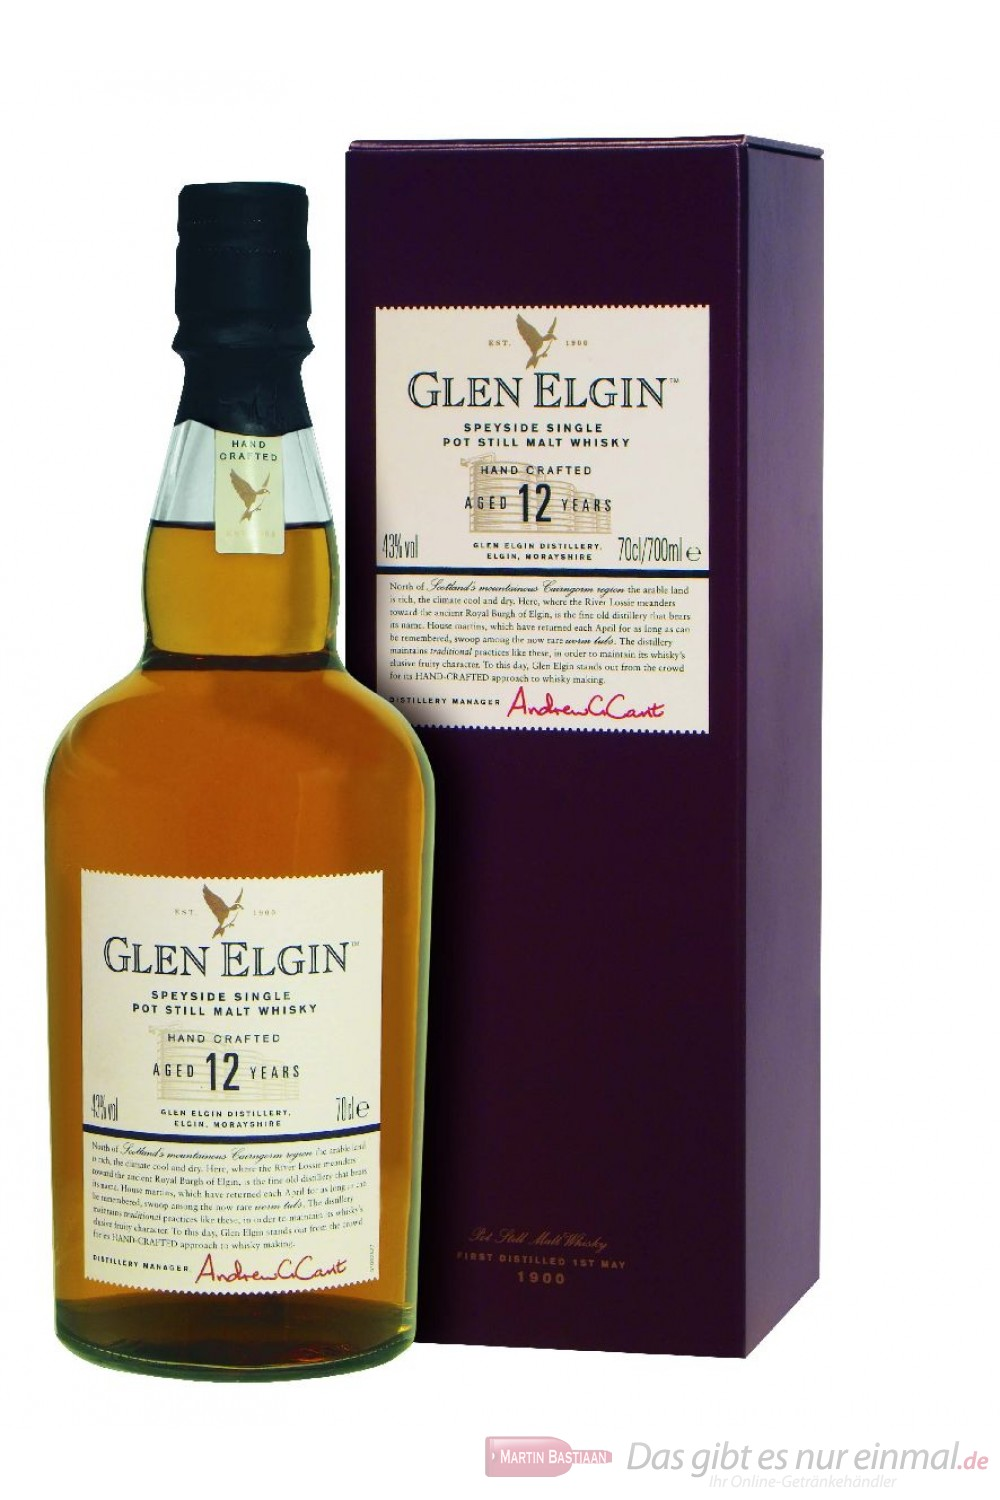 Glen Elgin 12 Jahre Speyside Single Pott Still Malt Whisky 43% 0,7l Flasche